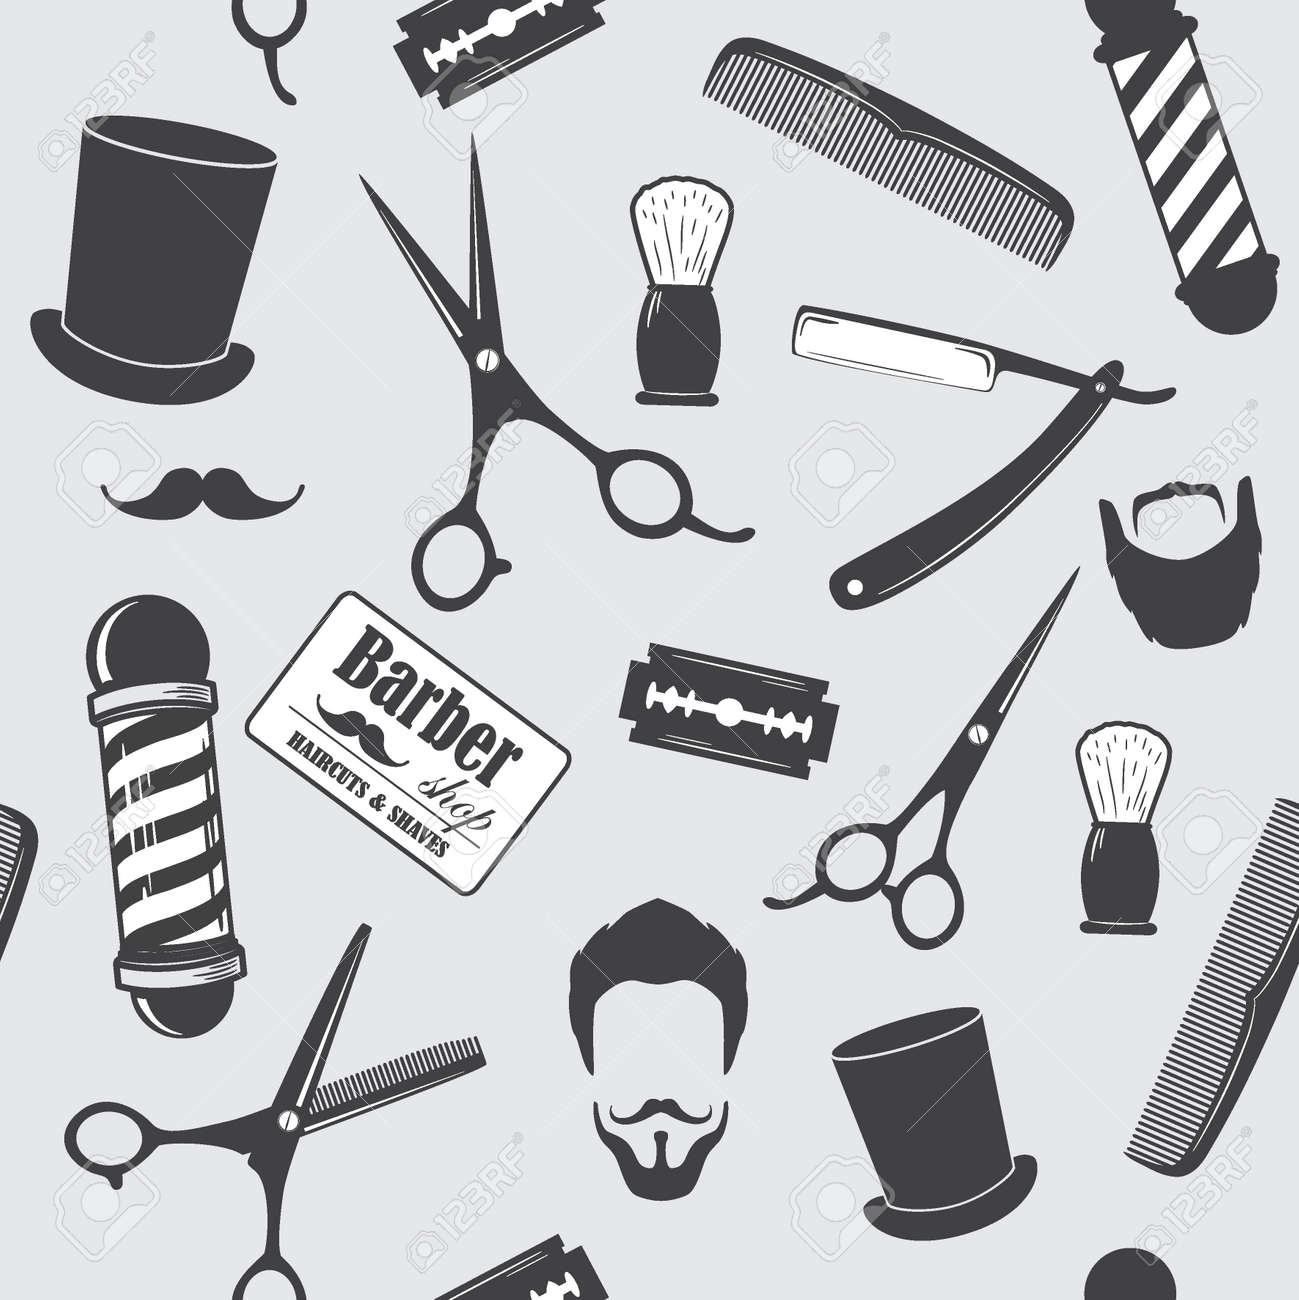 Barber Shop Vintage Seamless Pattern Decorative Wallpaper For